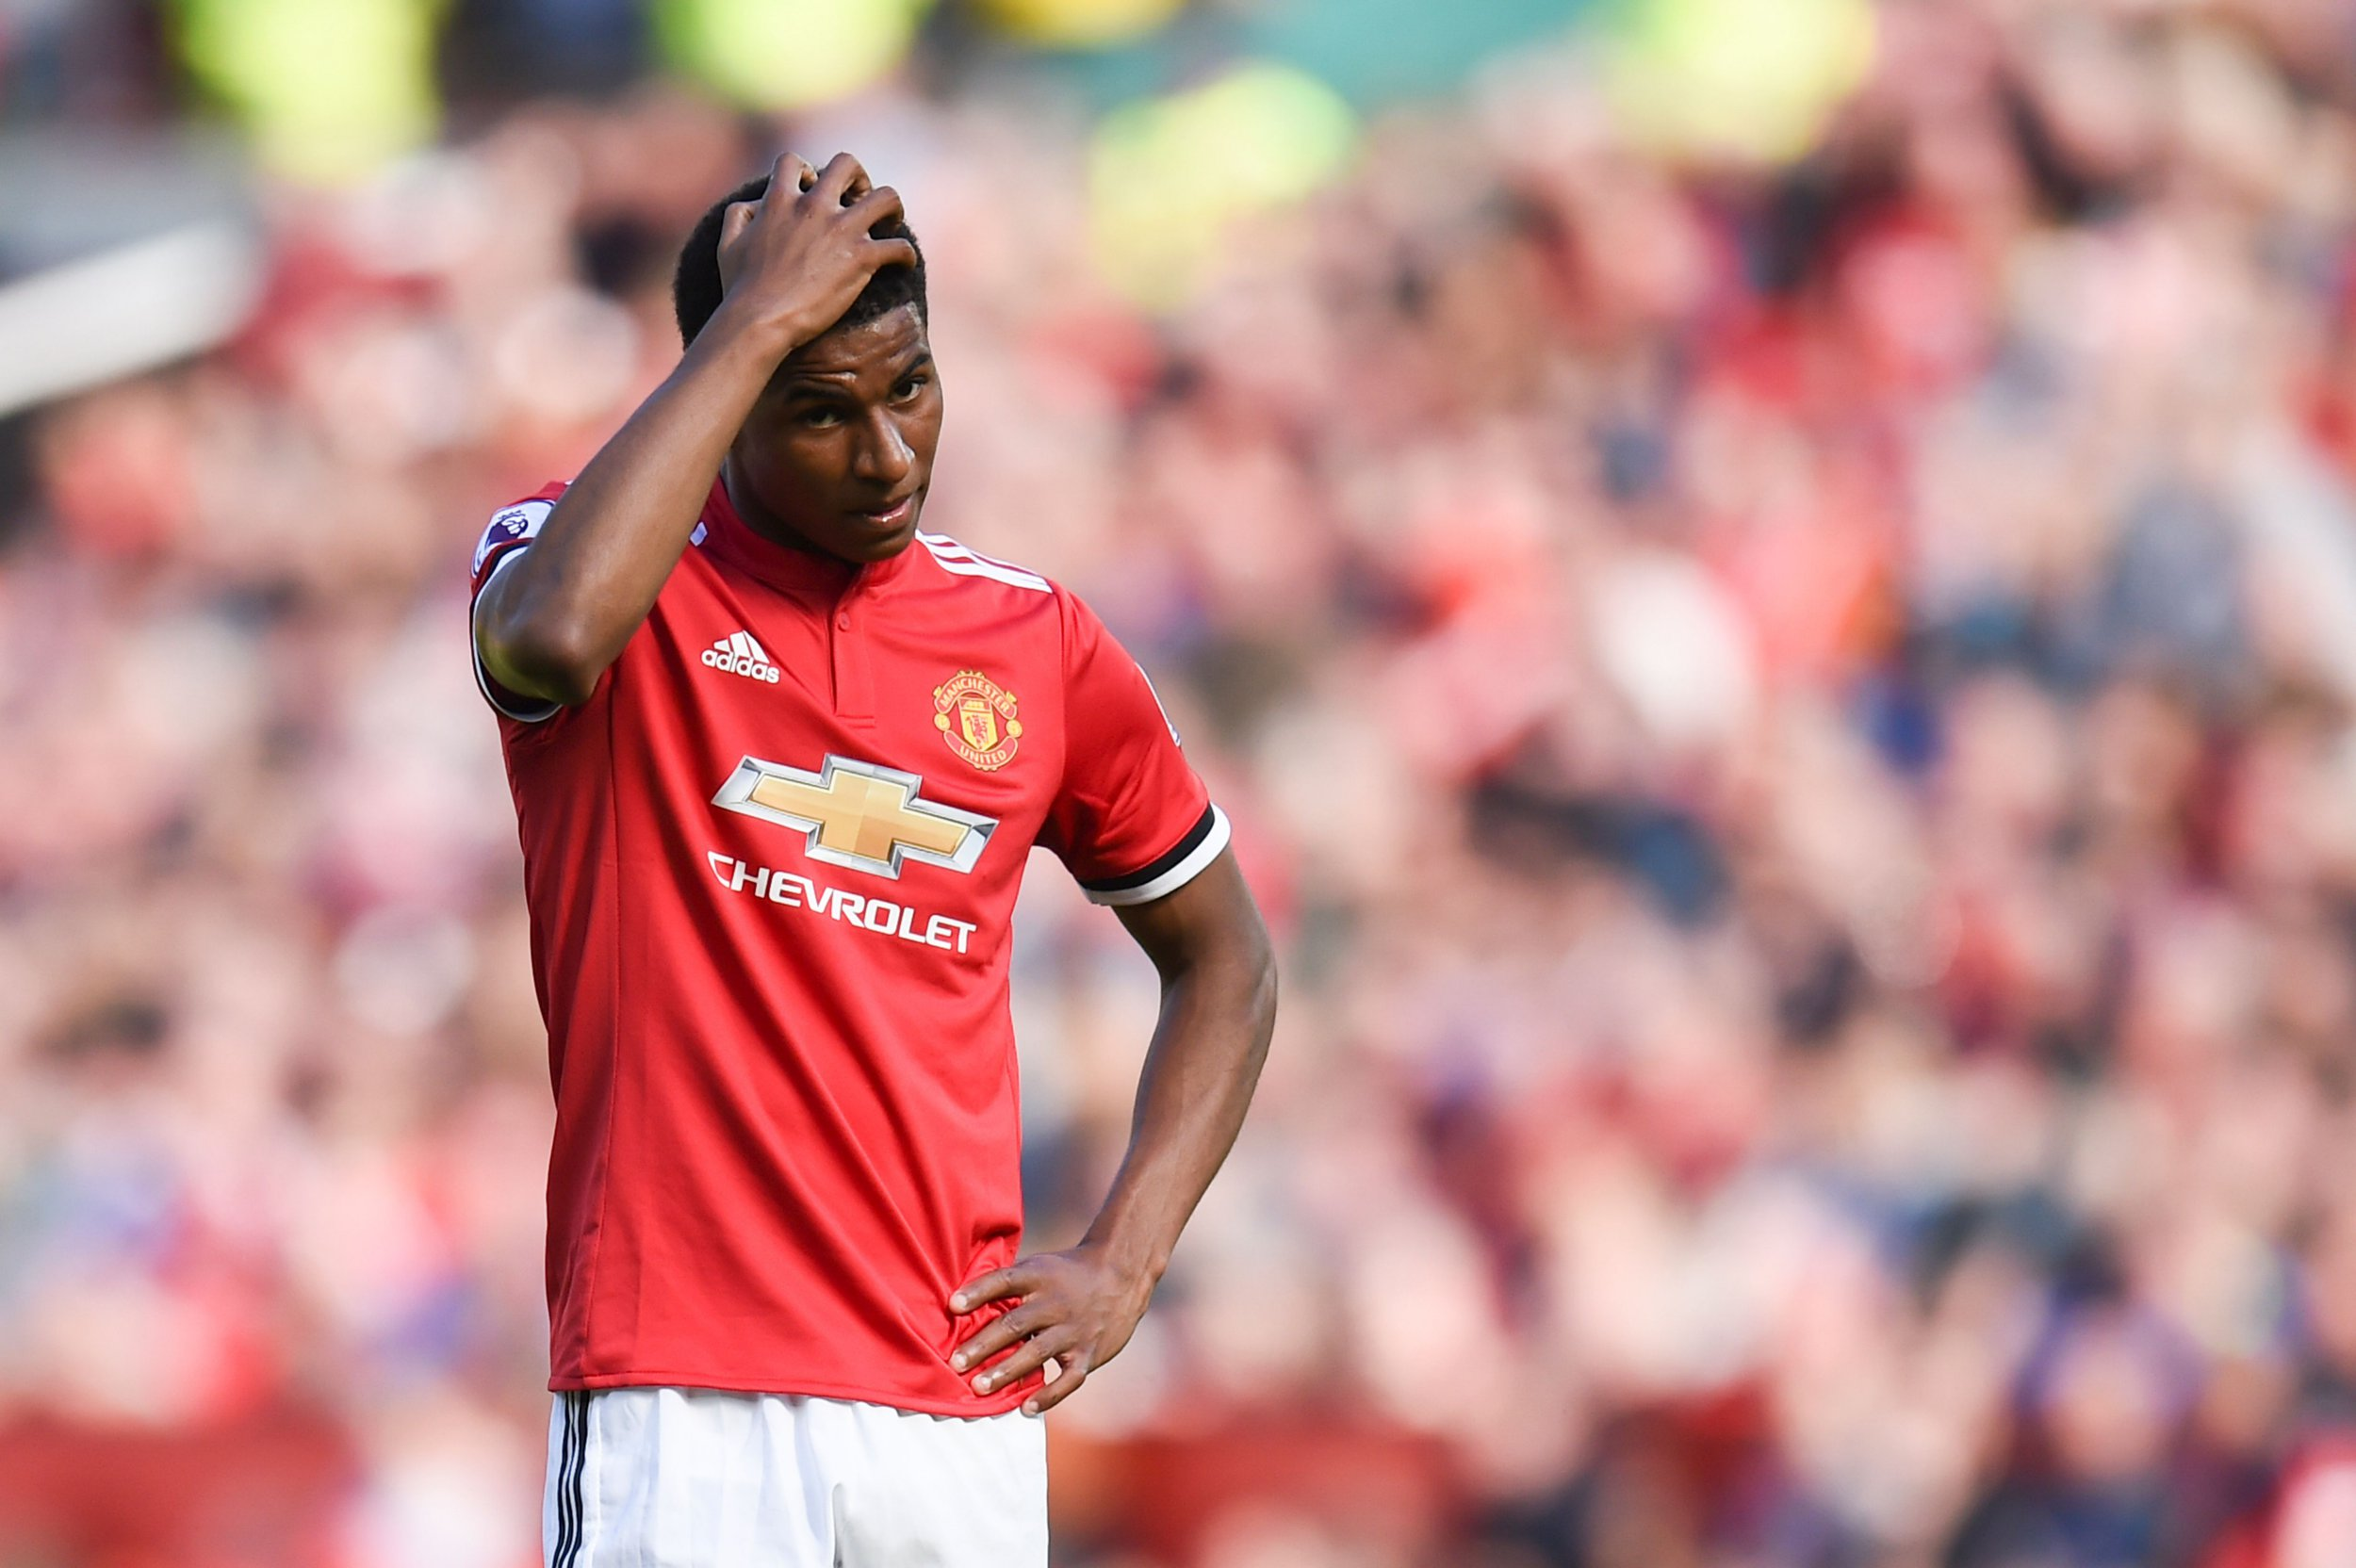 Manchester United's English striker Marcus Rashford reacts after missing a chance during the English Premier League football match between Manchester United and Watford at Old Trafford in Manchester, north west England, on May 13, 2018. / AFP PHOTO / Oli SCARFF / RESTRICTED TO EDITORIAL USE. No use with unauthorized audio, video, data, fixture lists, club/league logos or 'live' services. Online in-match use limited to 75 images, no video emulation. No use in betting, games or single club/league/player publications. / OLI SCARFF/AFP/Getty Images